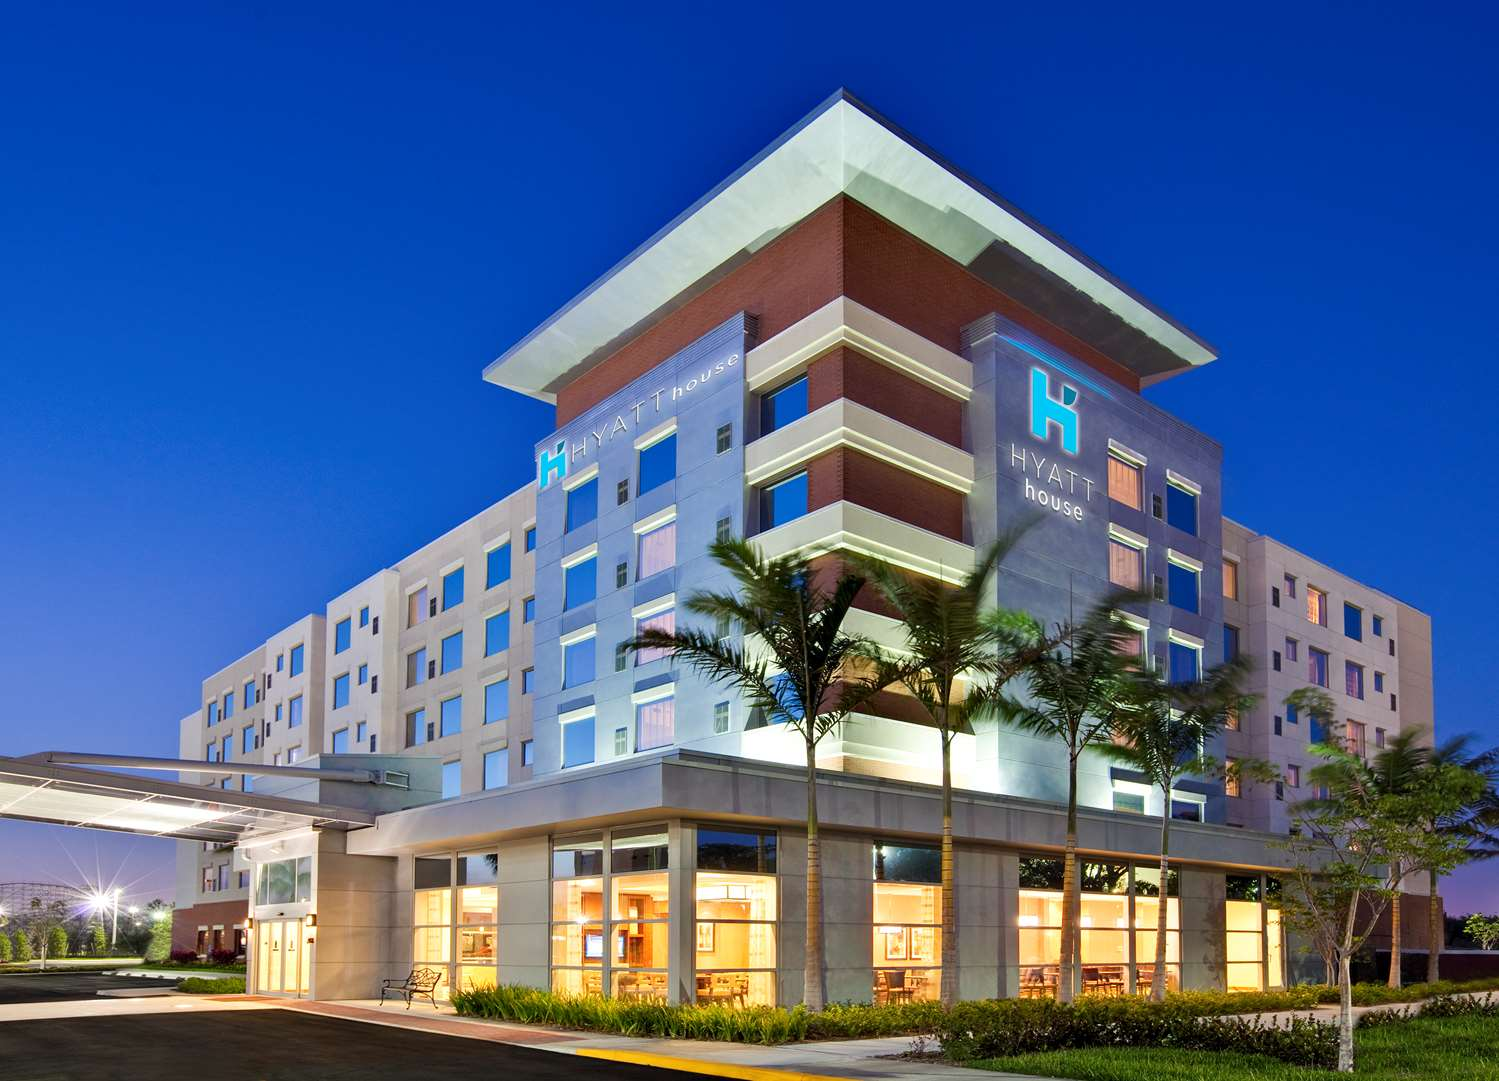 Hyatt House Hotel Dania Beach